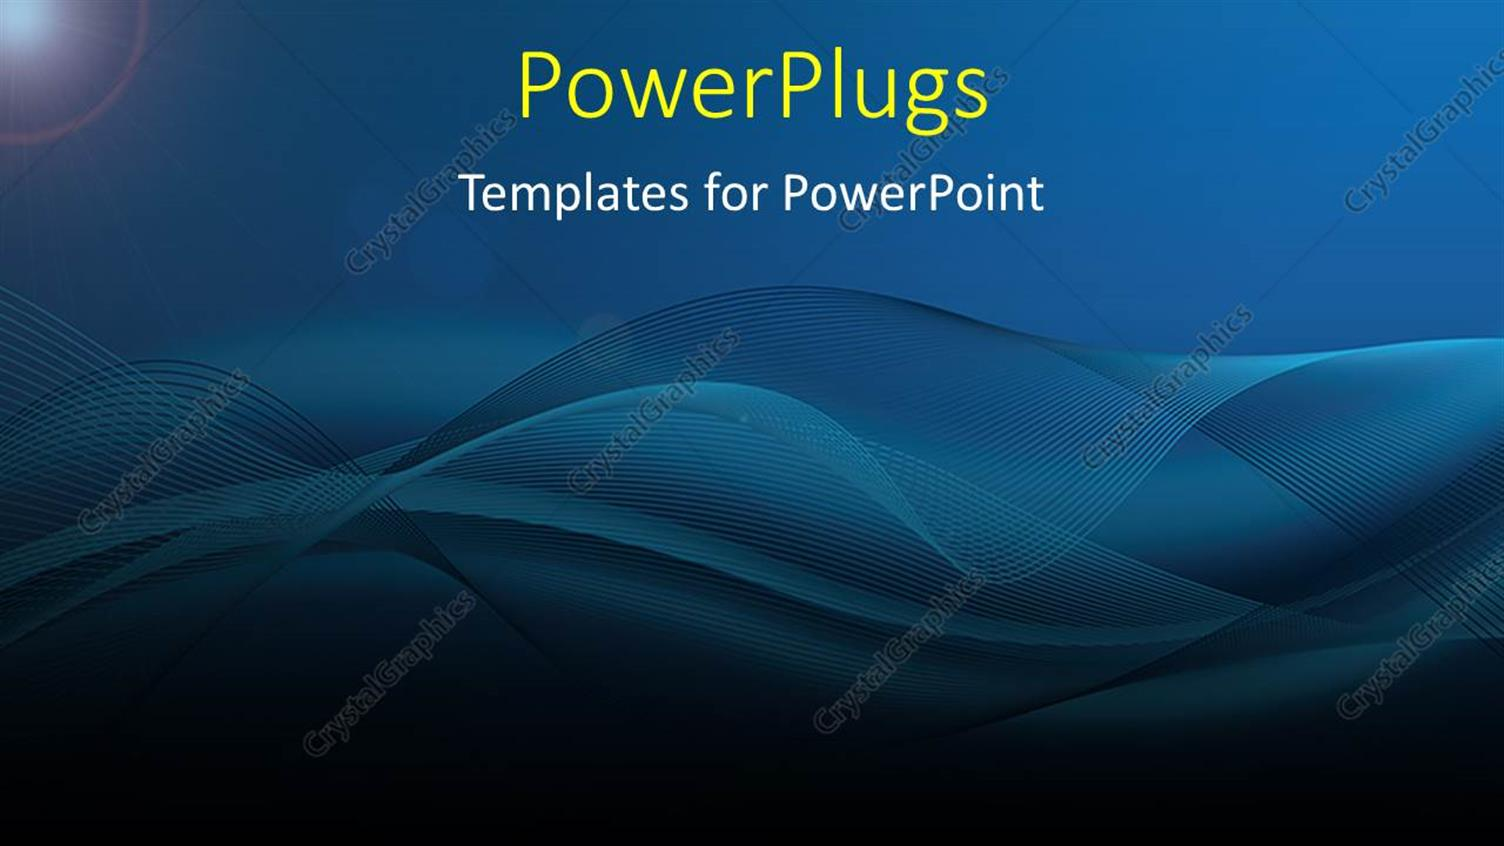 Powerpoint Template A Plain Blue Colored Background With Swirly